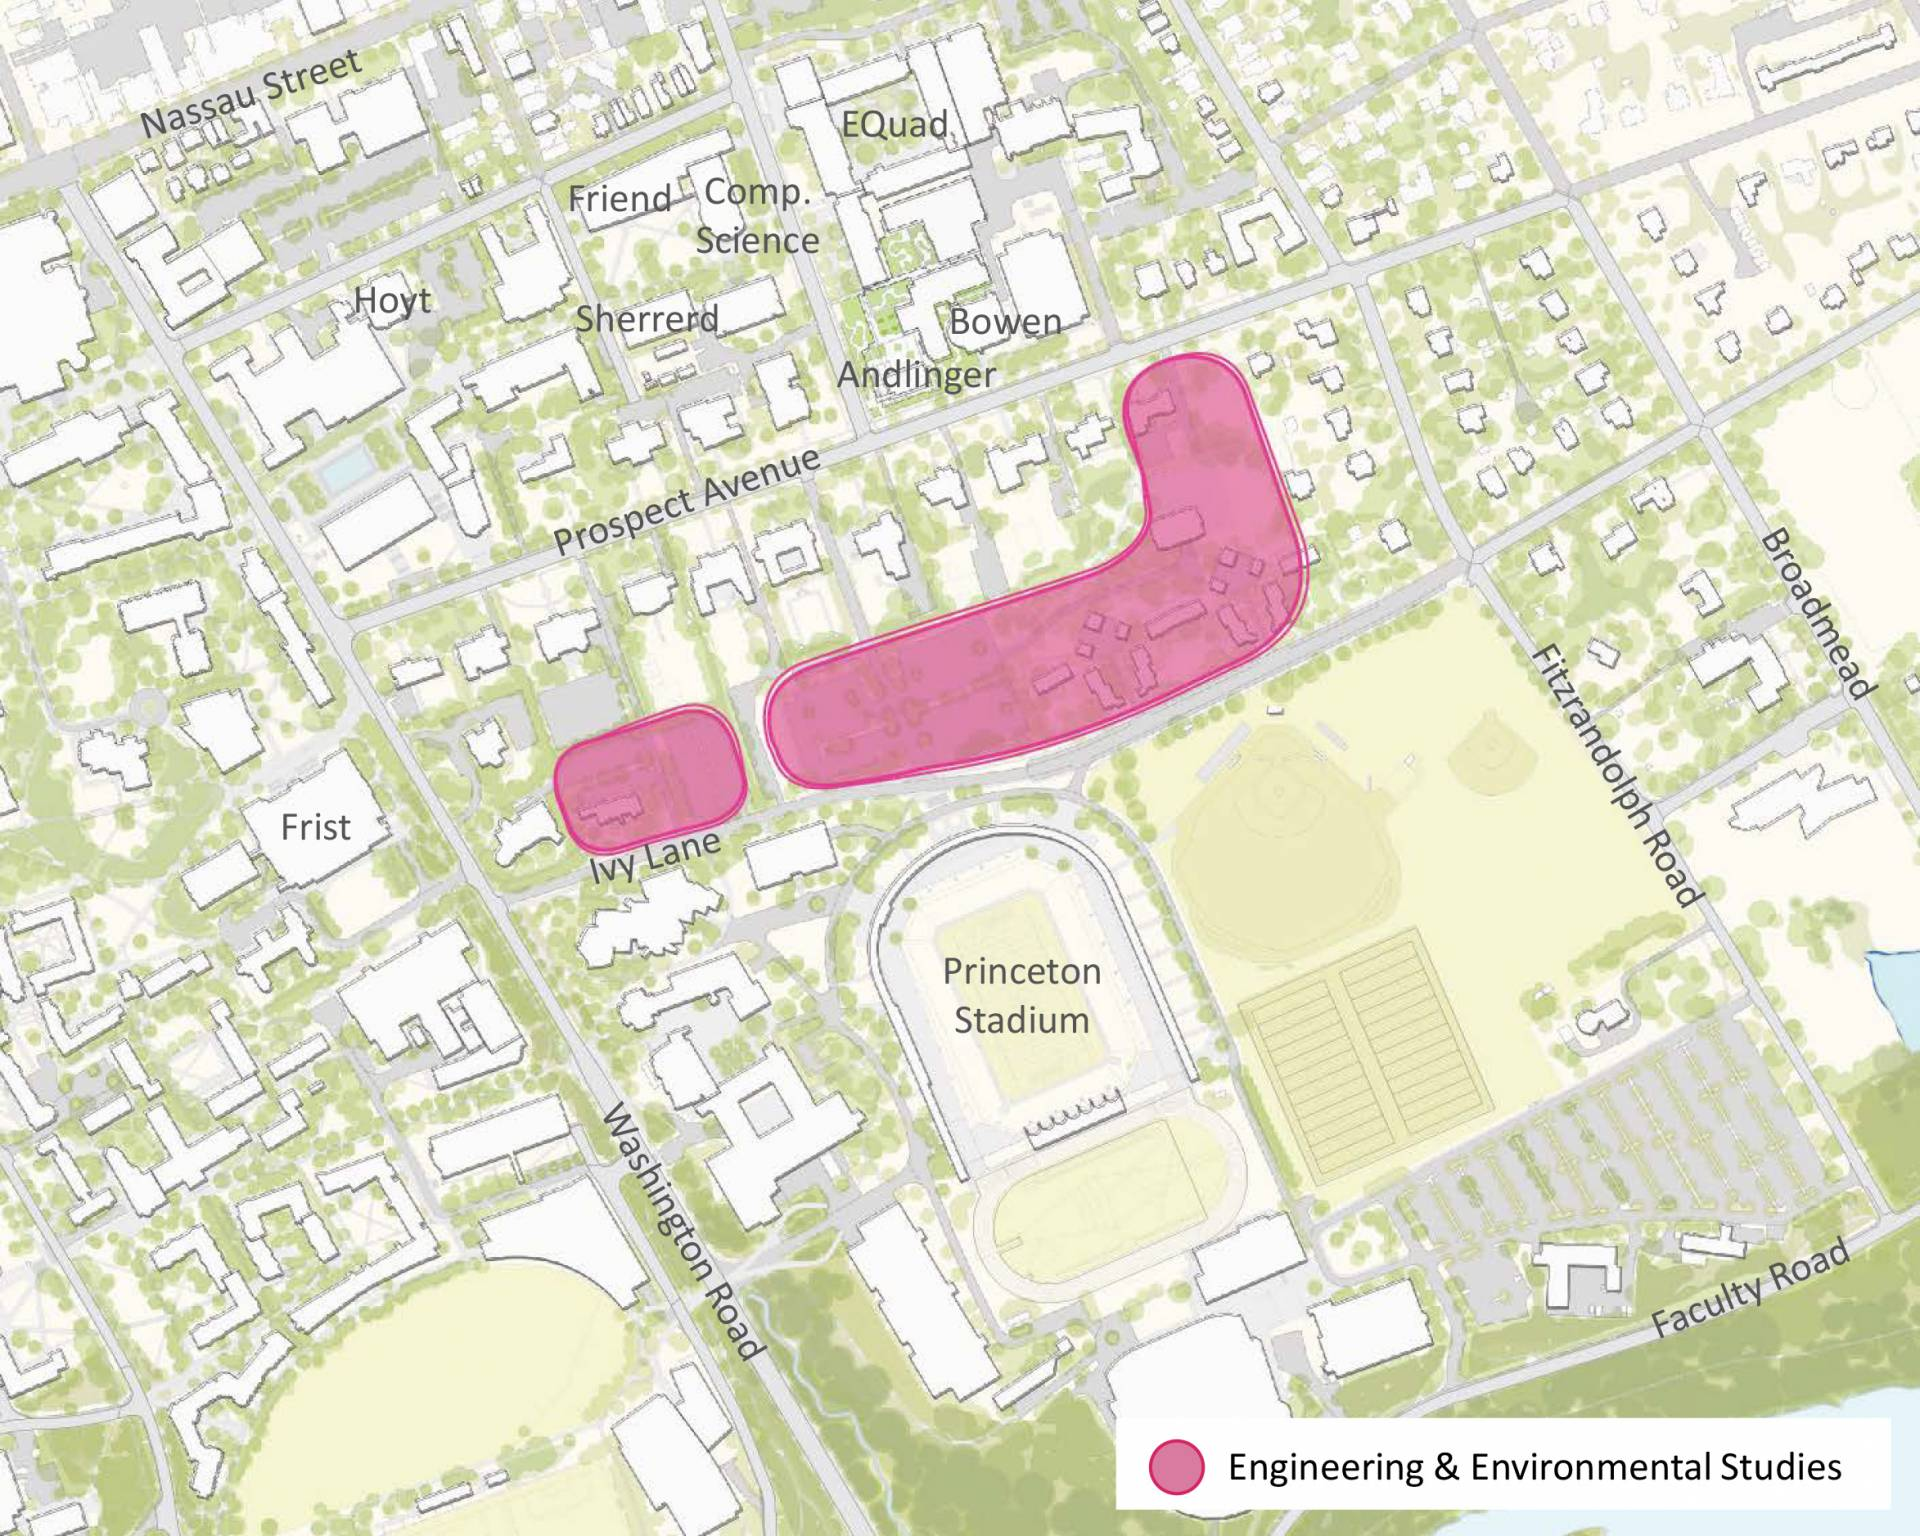 Map showing potential sites for engineering and environmental studies